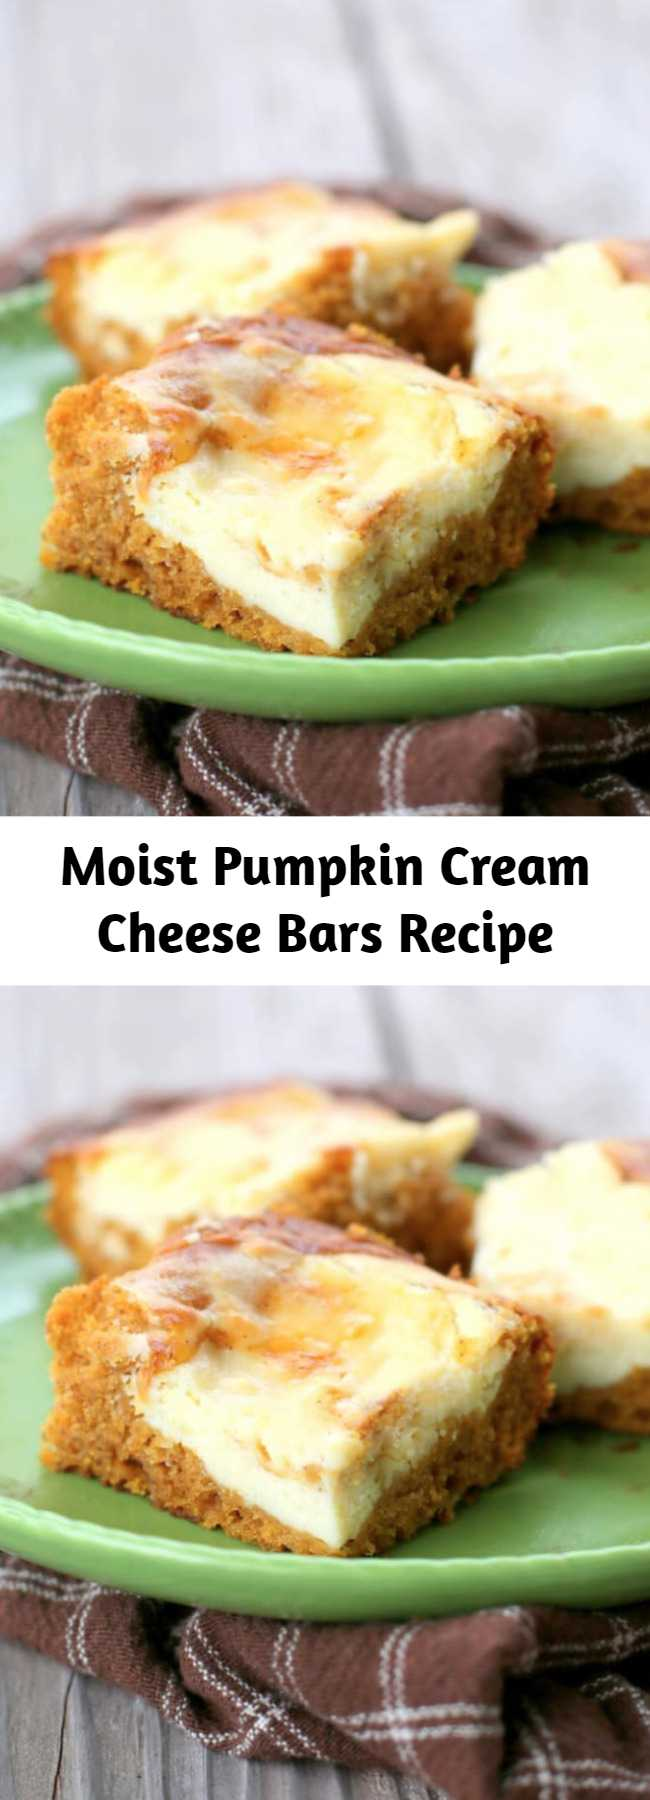 Moist Pumpkin Cream Cheese Bars Recipe - These Pumpkin Cream Cheese Bars are moist pumpkin bars with swirls of cream cheese frosting throughout. This dessert will be on your fall treat recipe list every year.